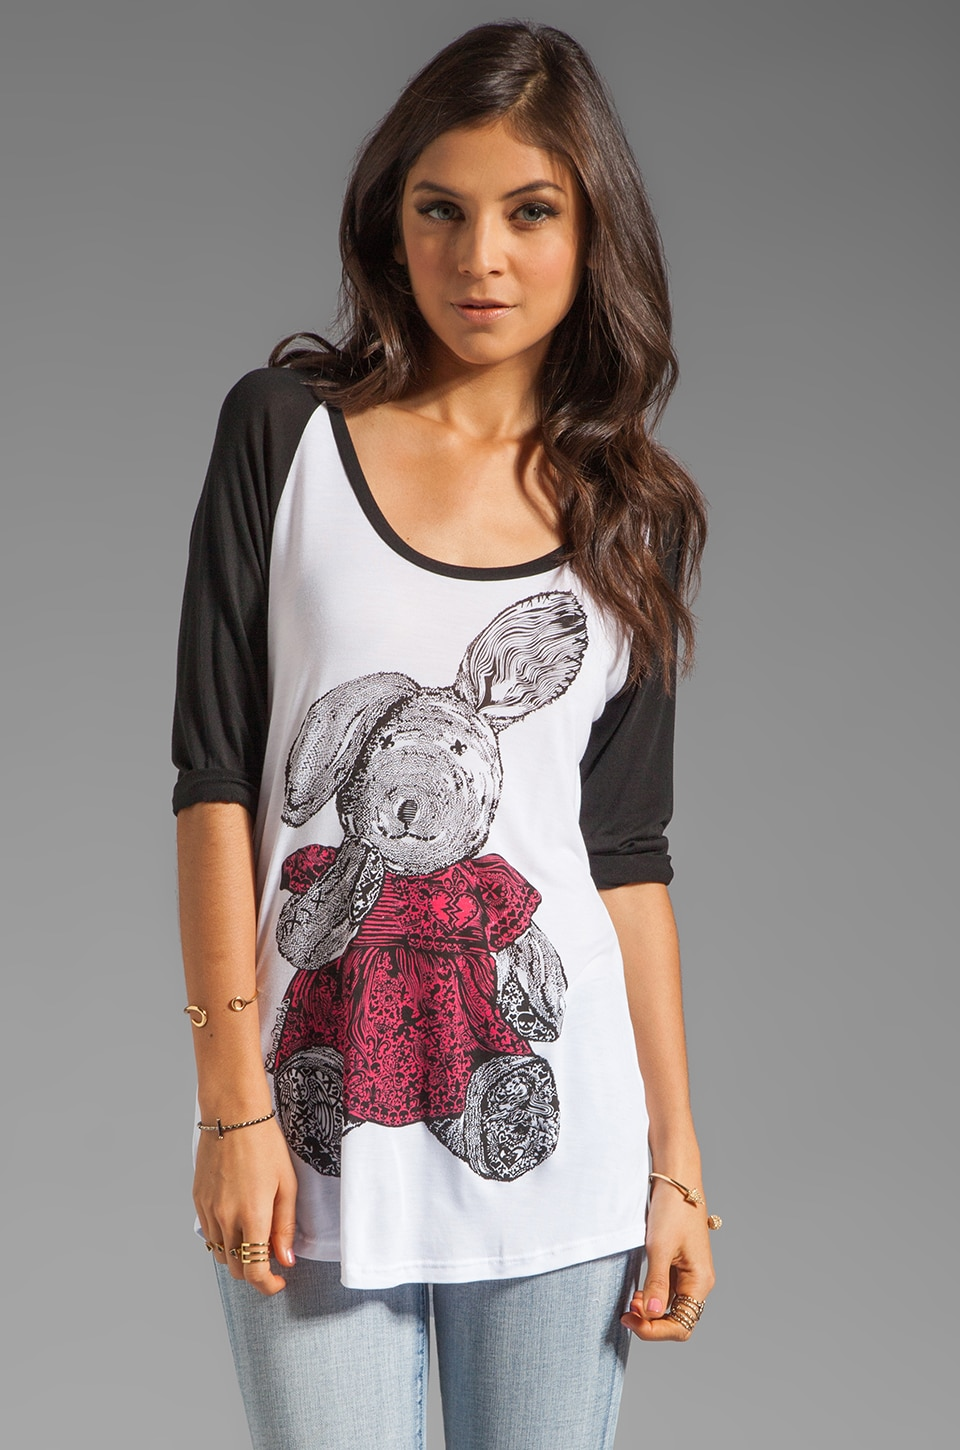 Lauren Moshi Frankie Color Bunny Baseball Tee in White/Black